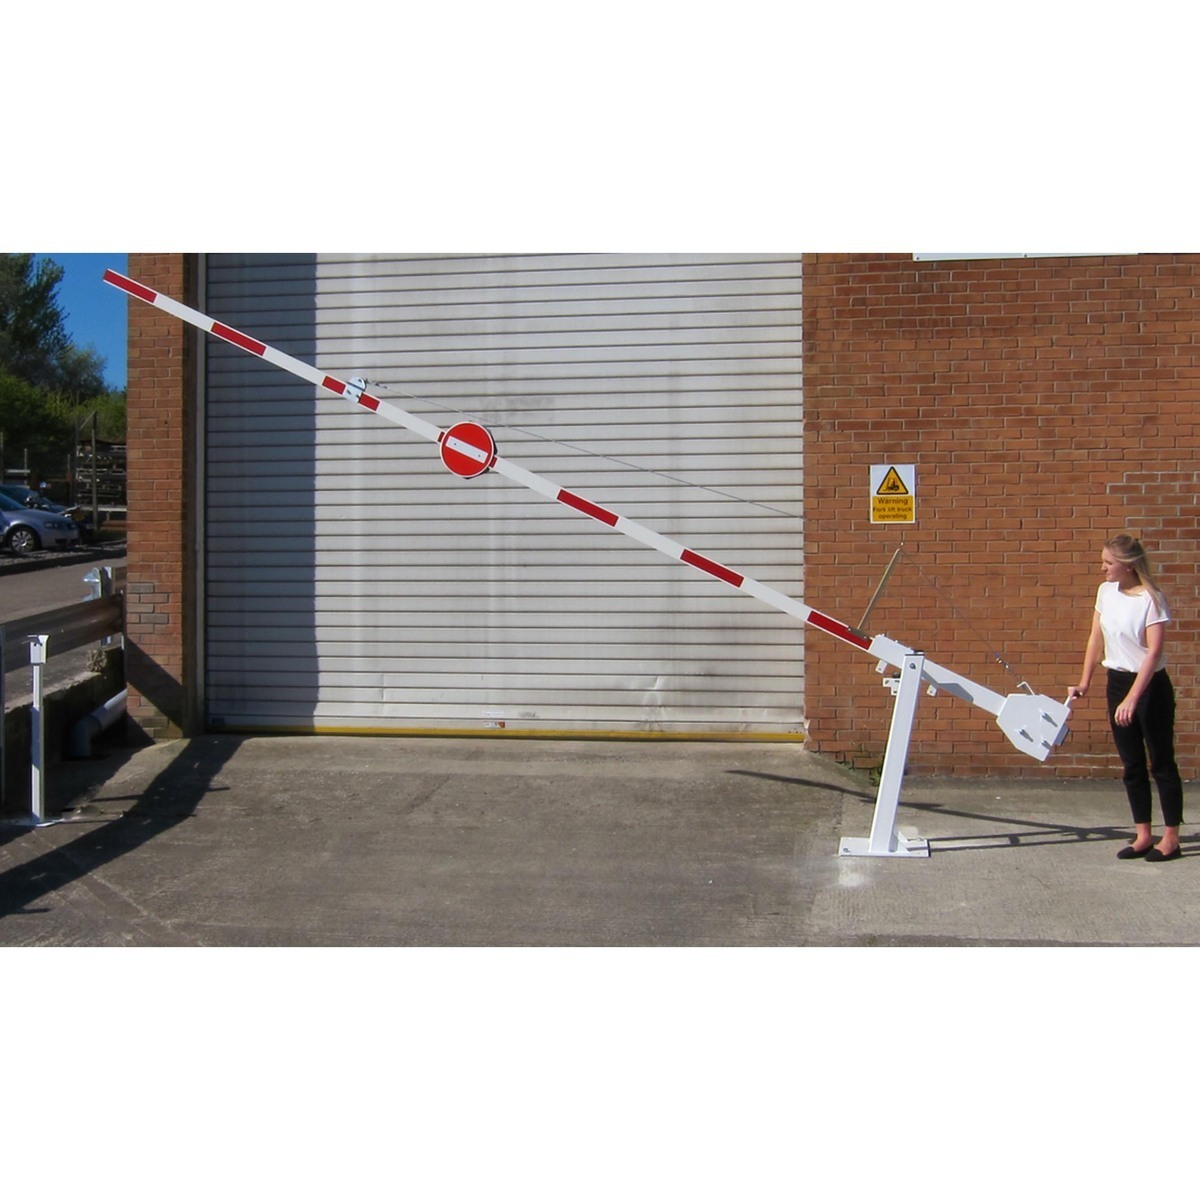 Manual barrier arm lifted1